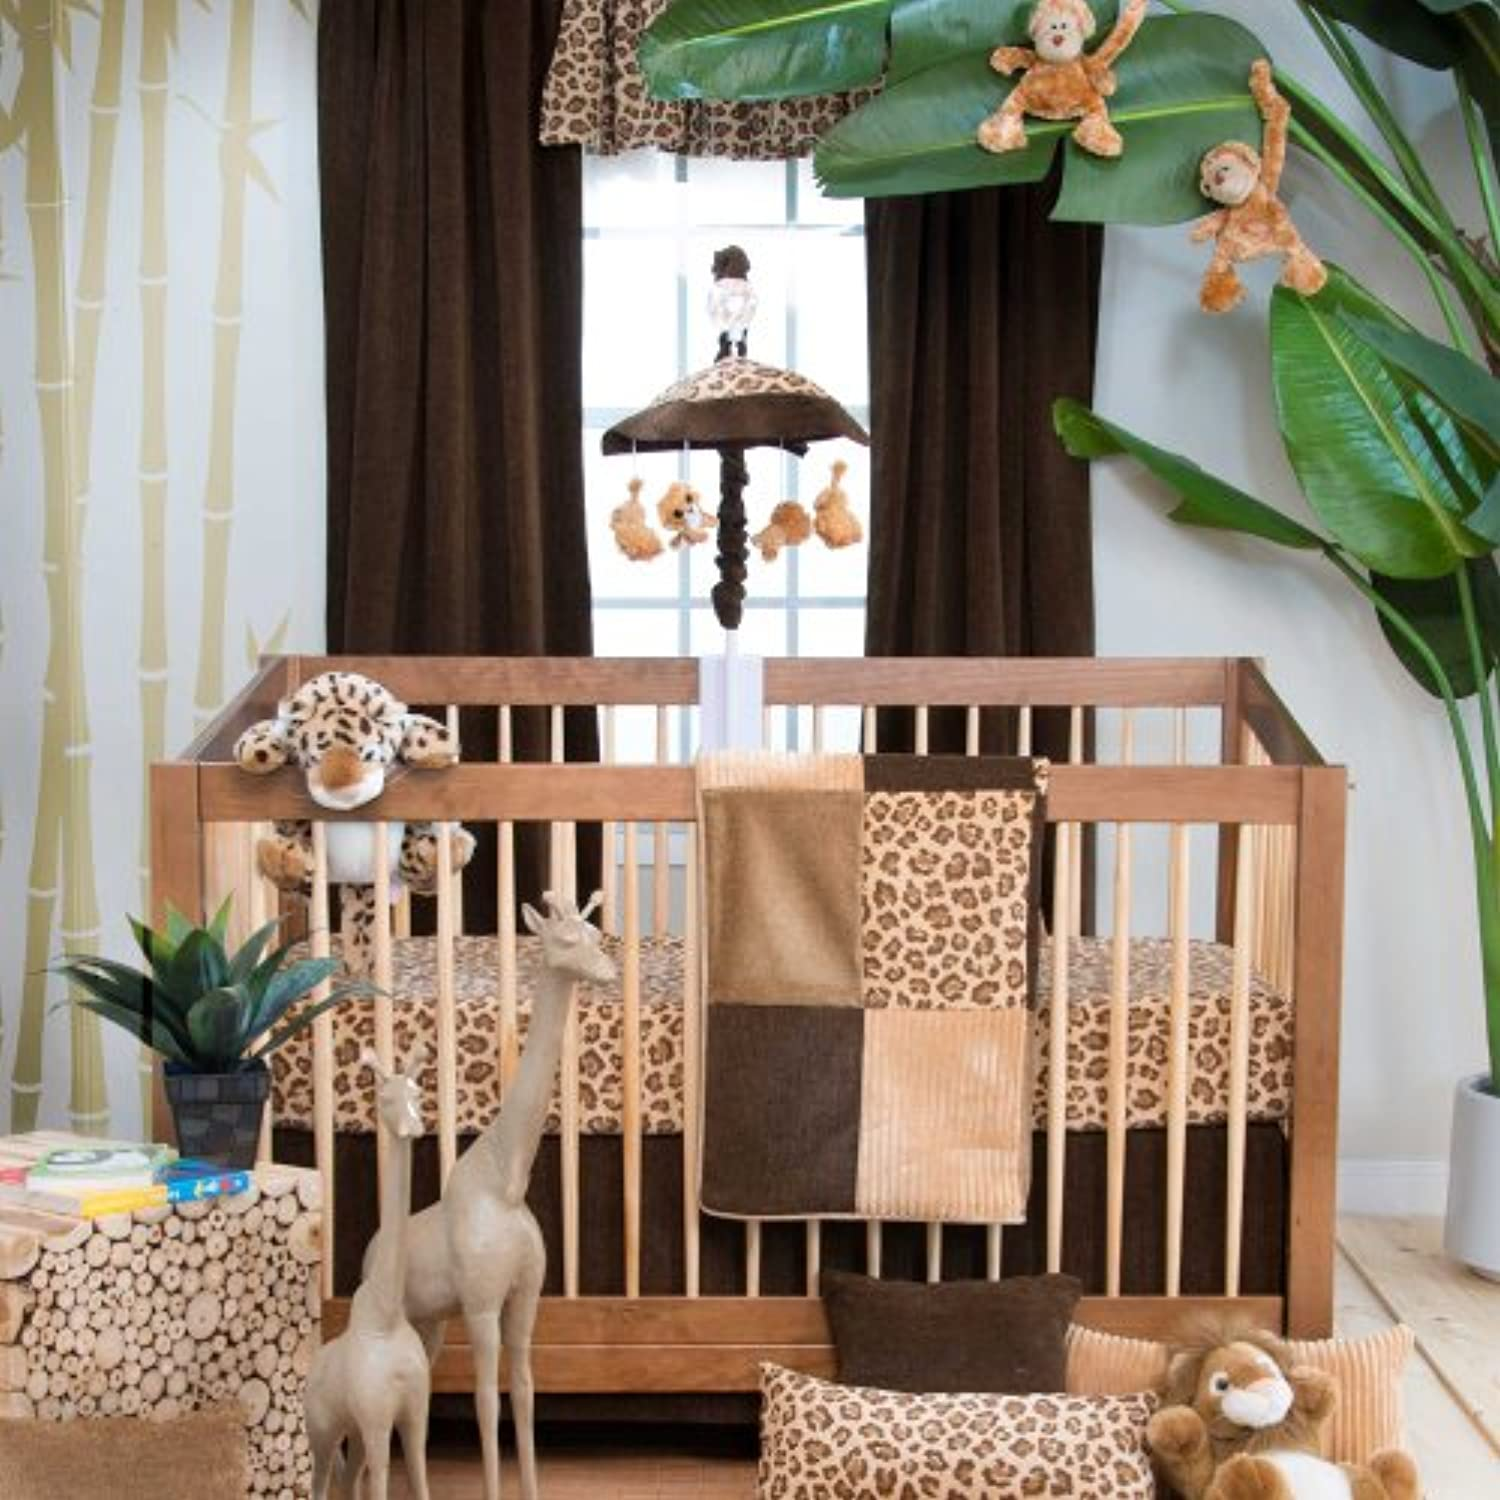 Tanzania 3 Piece Baby Crib Bedding Set by Glenna Jean by Glenna Jean